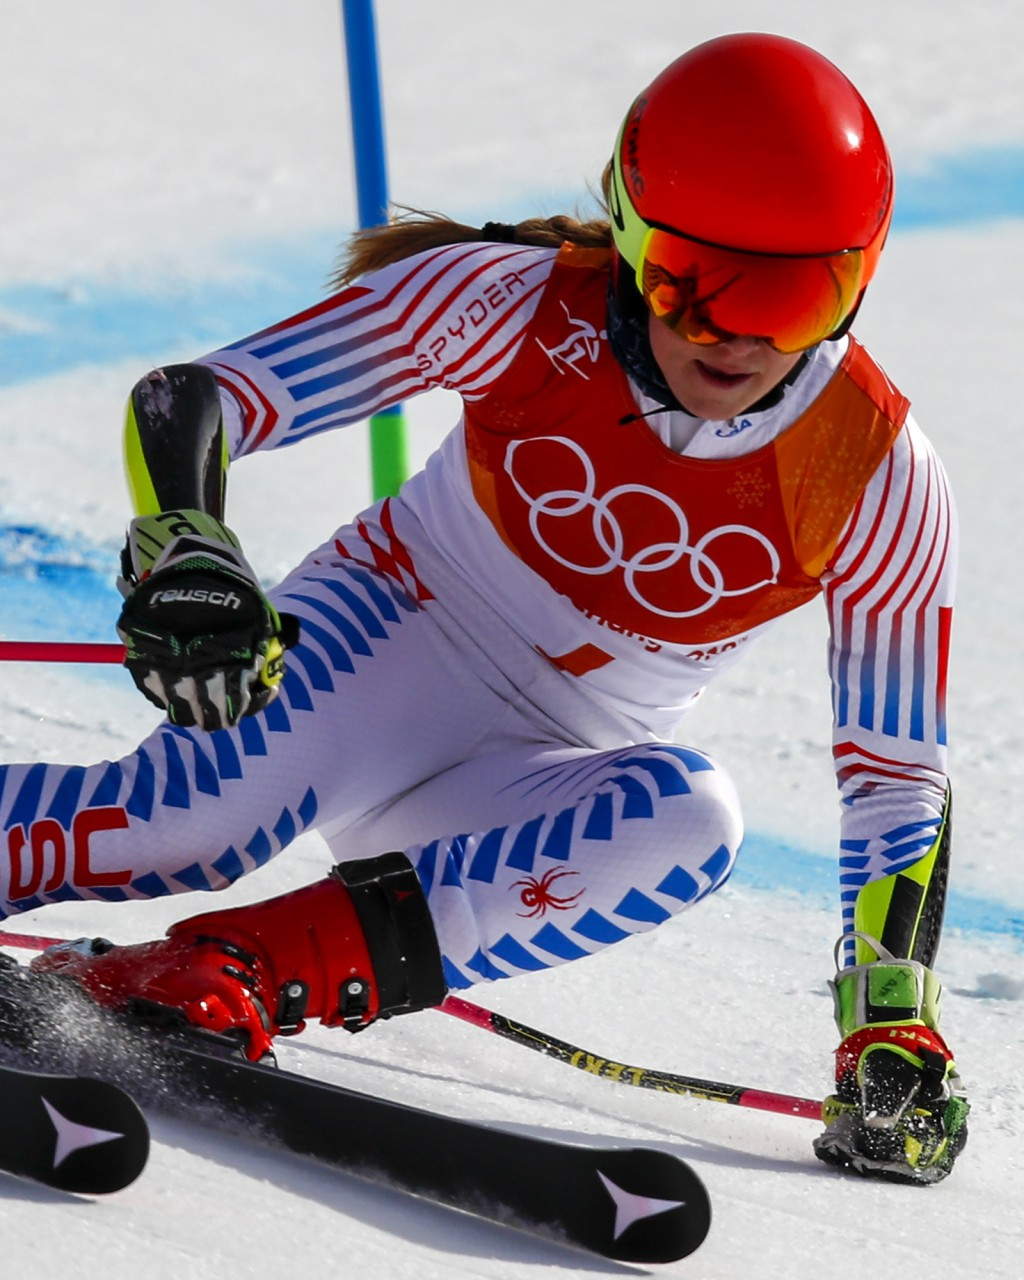 Mikaela Shiffrin, of the United States, skies to victory in the Women's Giant Slalom at the 2018 Winter Olympics in Pyeongchang, South Korea, Thursday